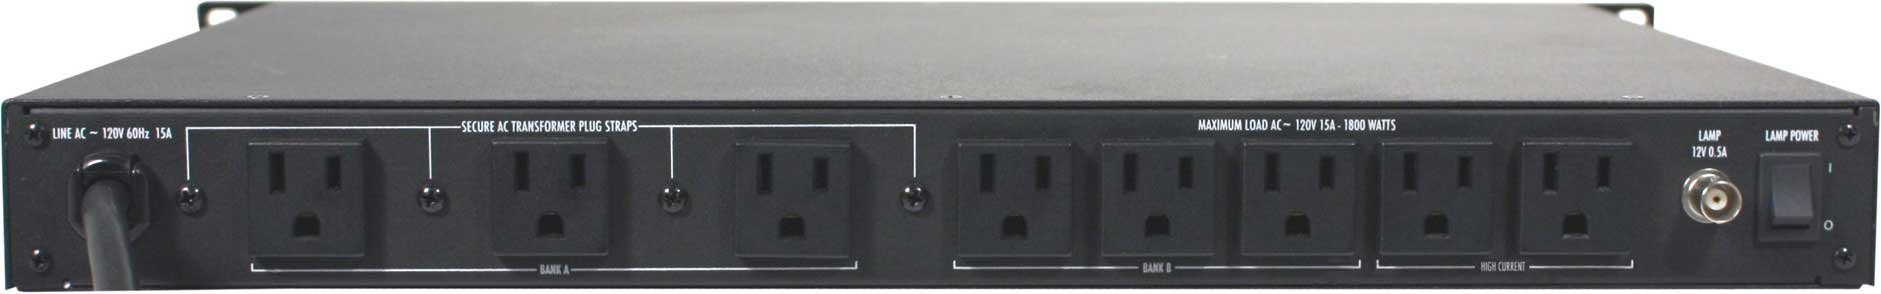 furman p1800pfr power conditioner surge suppressor 15a full compass. Black Bedroom Furniture Sets. Home Design Ideas